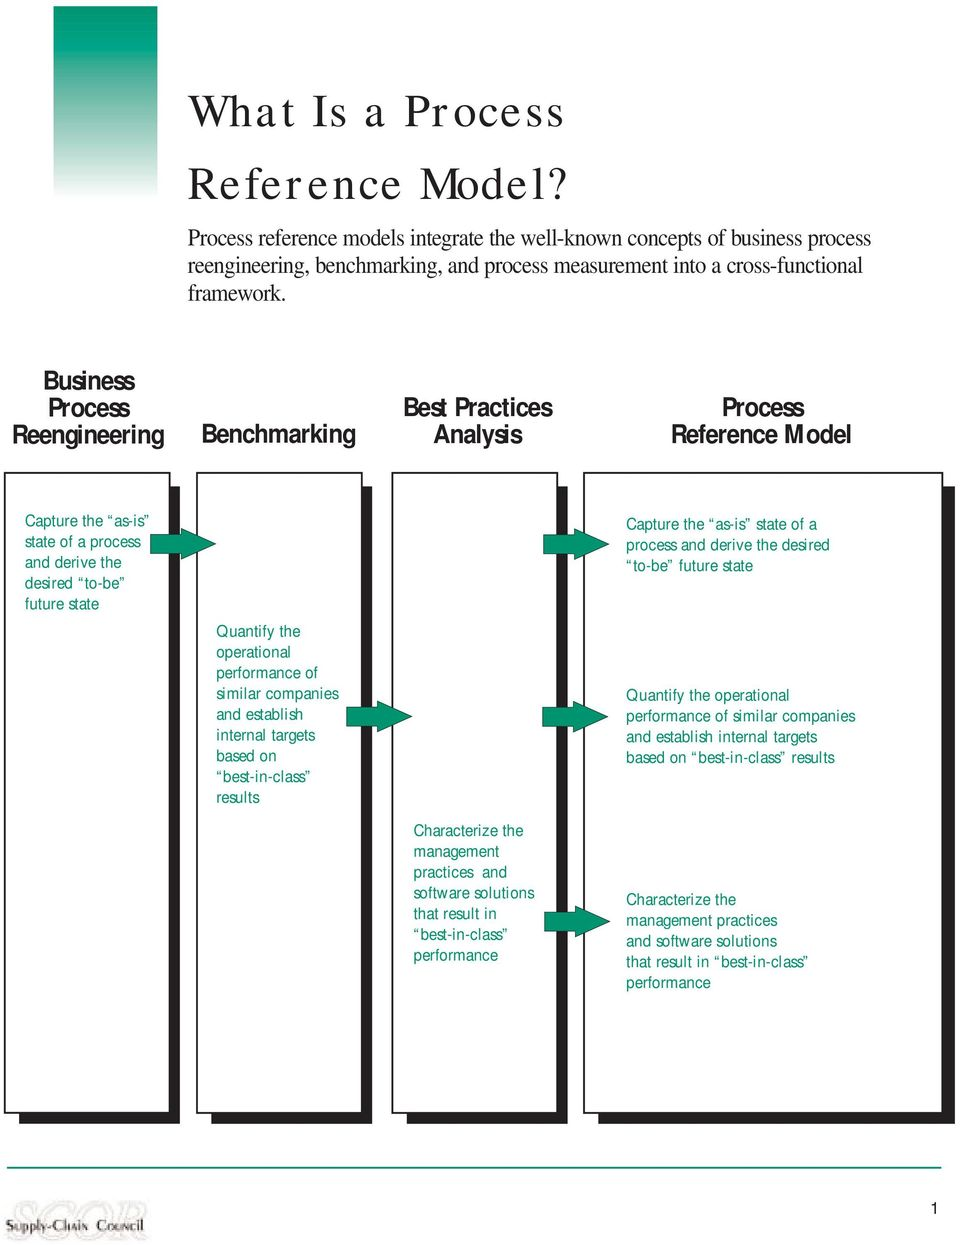 Business Process Reengineering Benchmarking Best Practices Analysis Process Reference Model Capture the as-is state of a process and derive the desired to-be future state Capture the as-is state of a